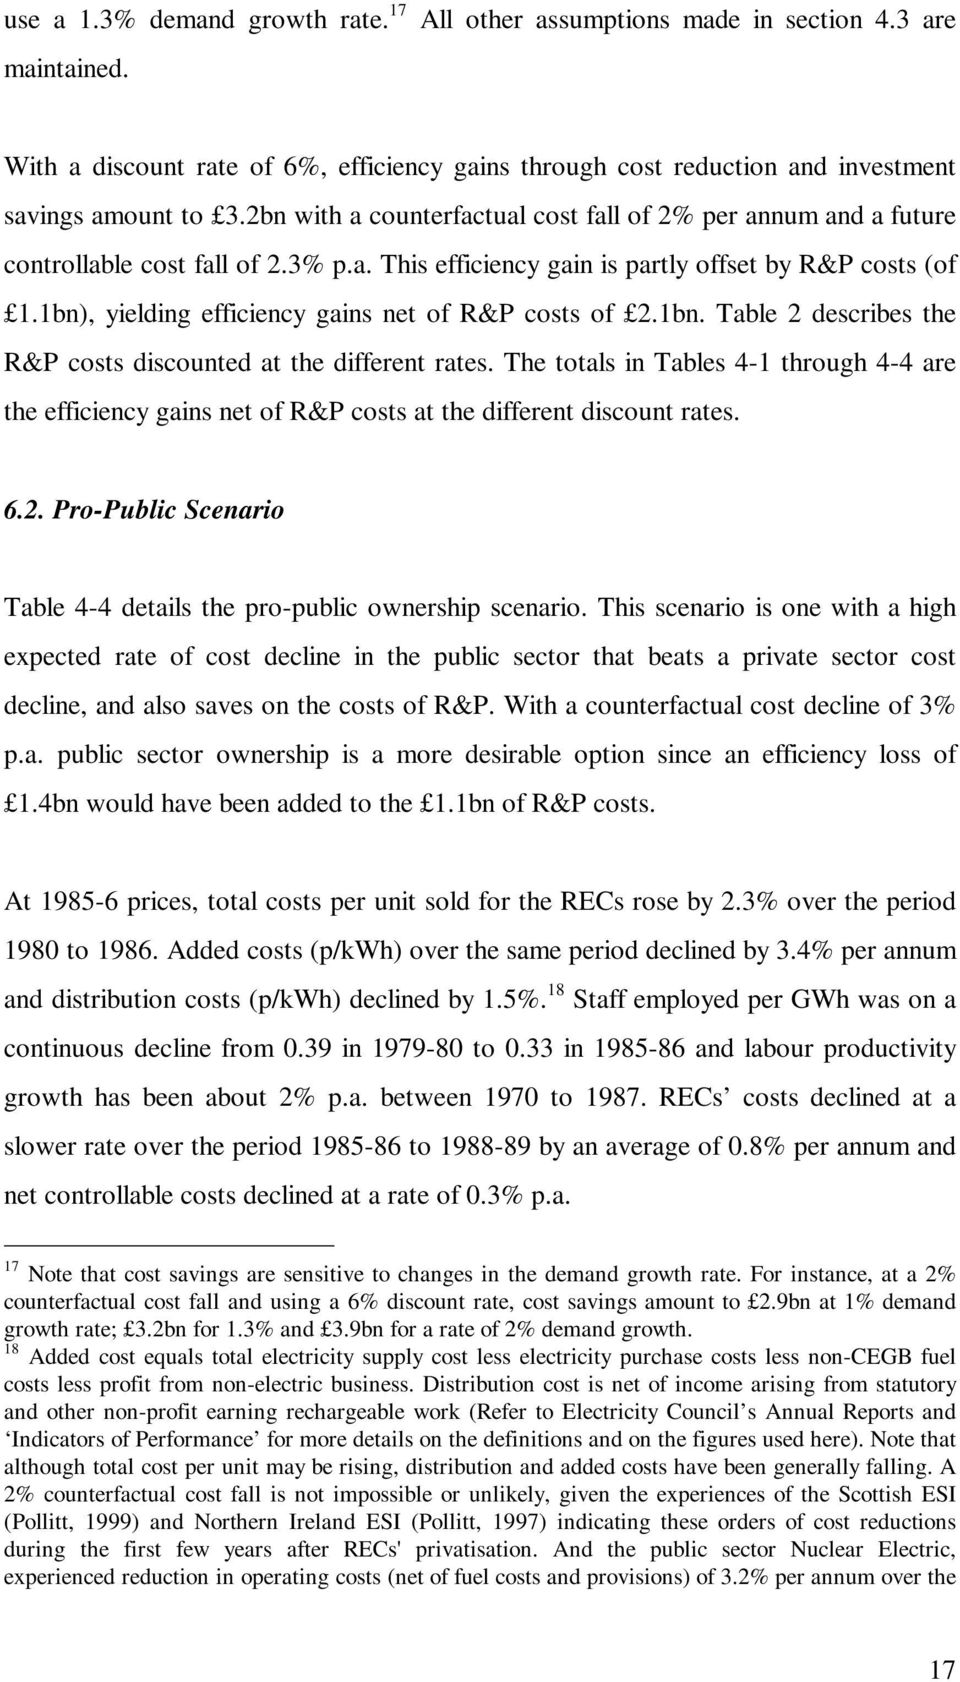 1bn), yielding efficiency gains net of R&P costs of 2.1bn. Table 2 describes the R&P costs discounted at the different rates.